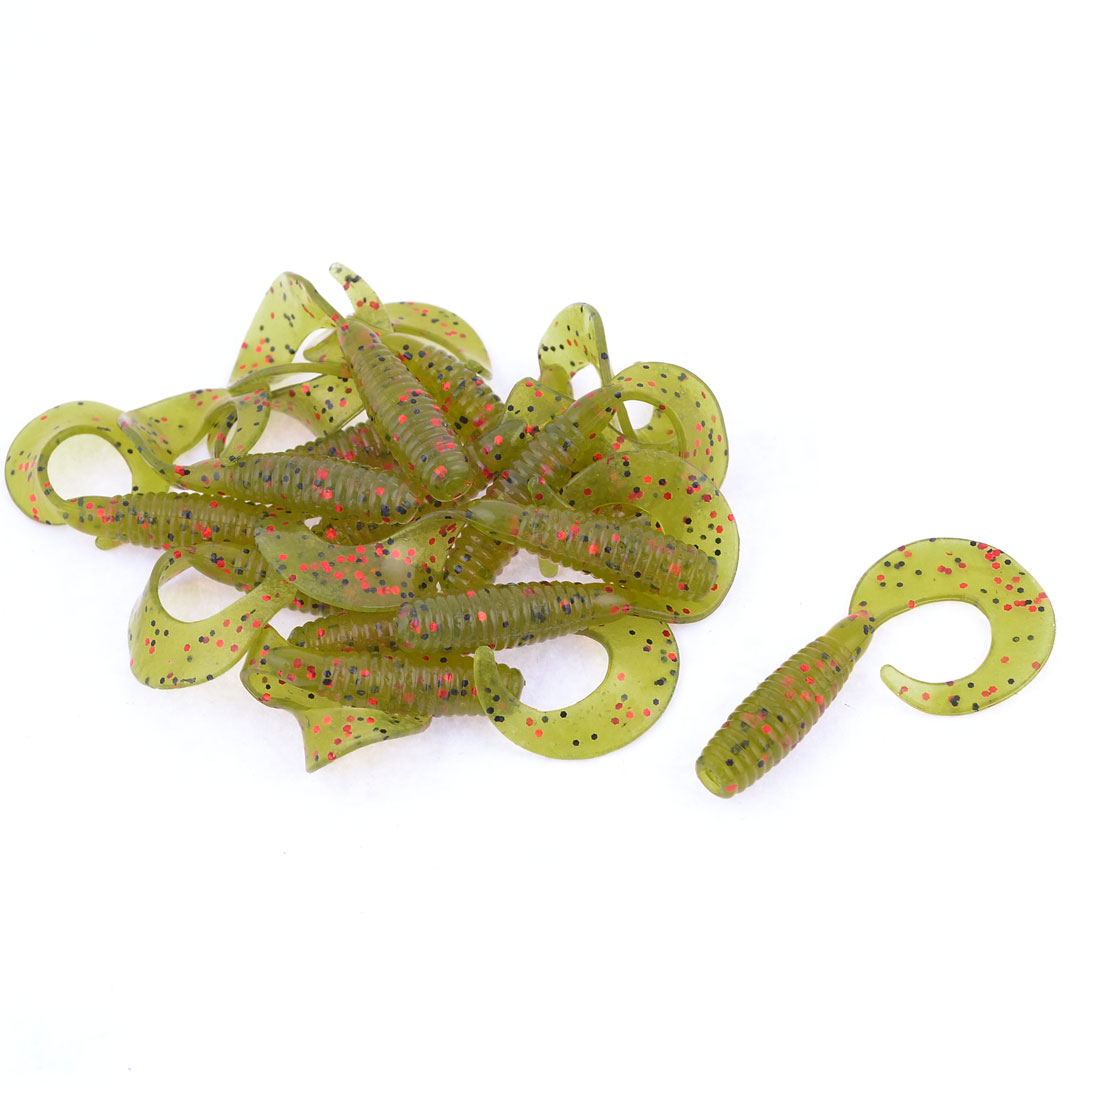 Multicolored Worm Shaped Silicone Fishing Fish Soft Lures Baits Bait 14 Pcs